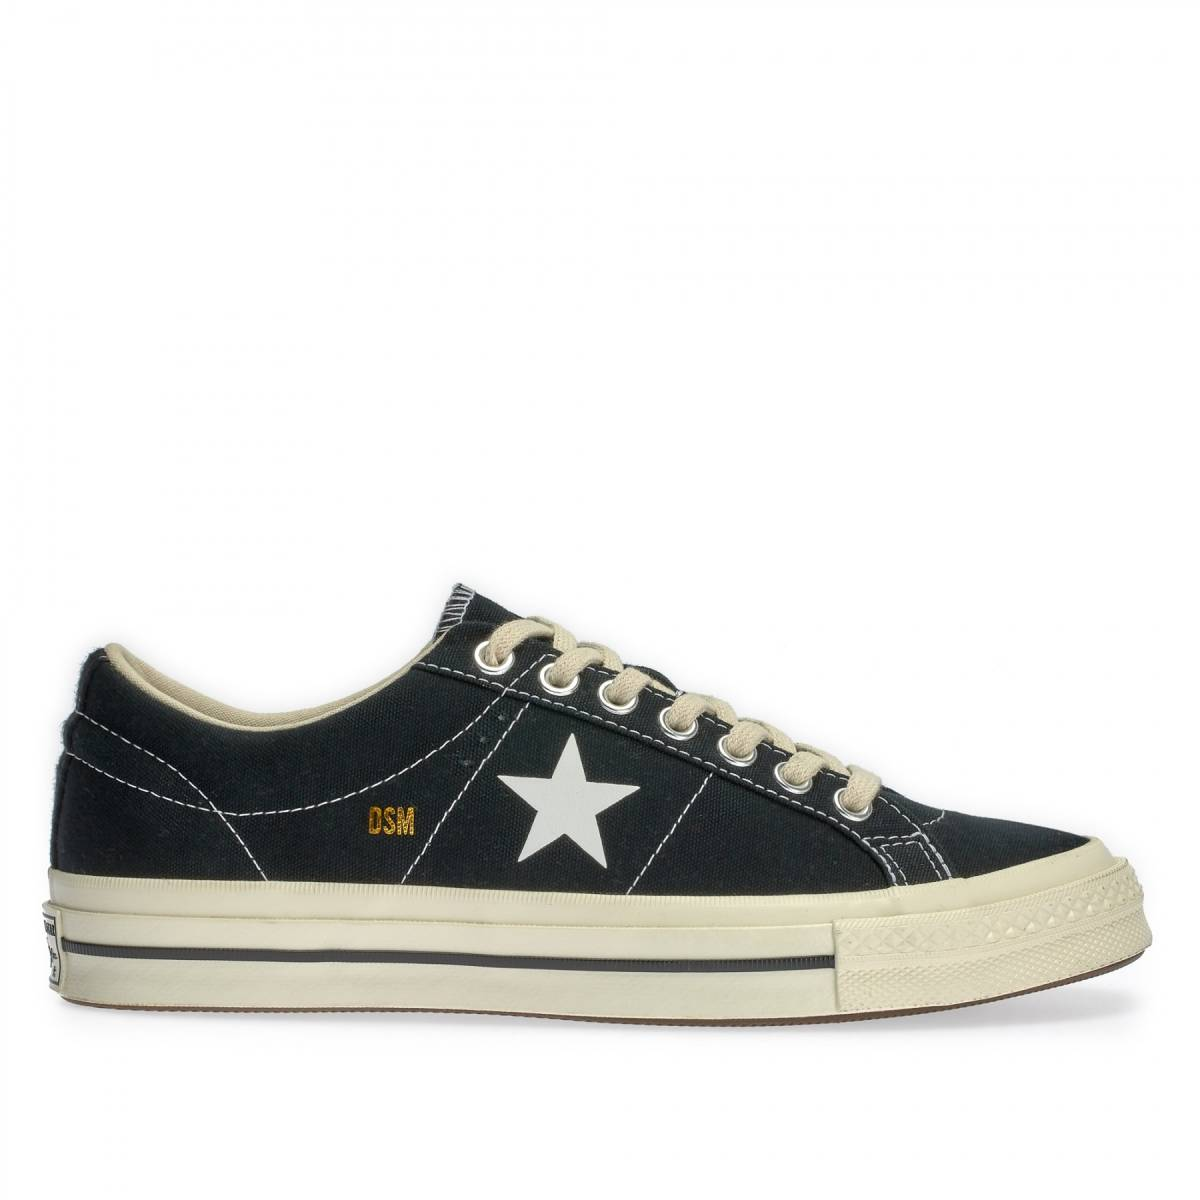 1fe53d5edf4a 代購代標第一品牌- 樂淘letao - 送料無料Converse One Star Canvas x DSM (Black) 24.0cm UK5  US5 CT70 ワンスターCOMME des GARCONS コンバースギャルソン